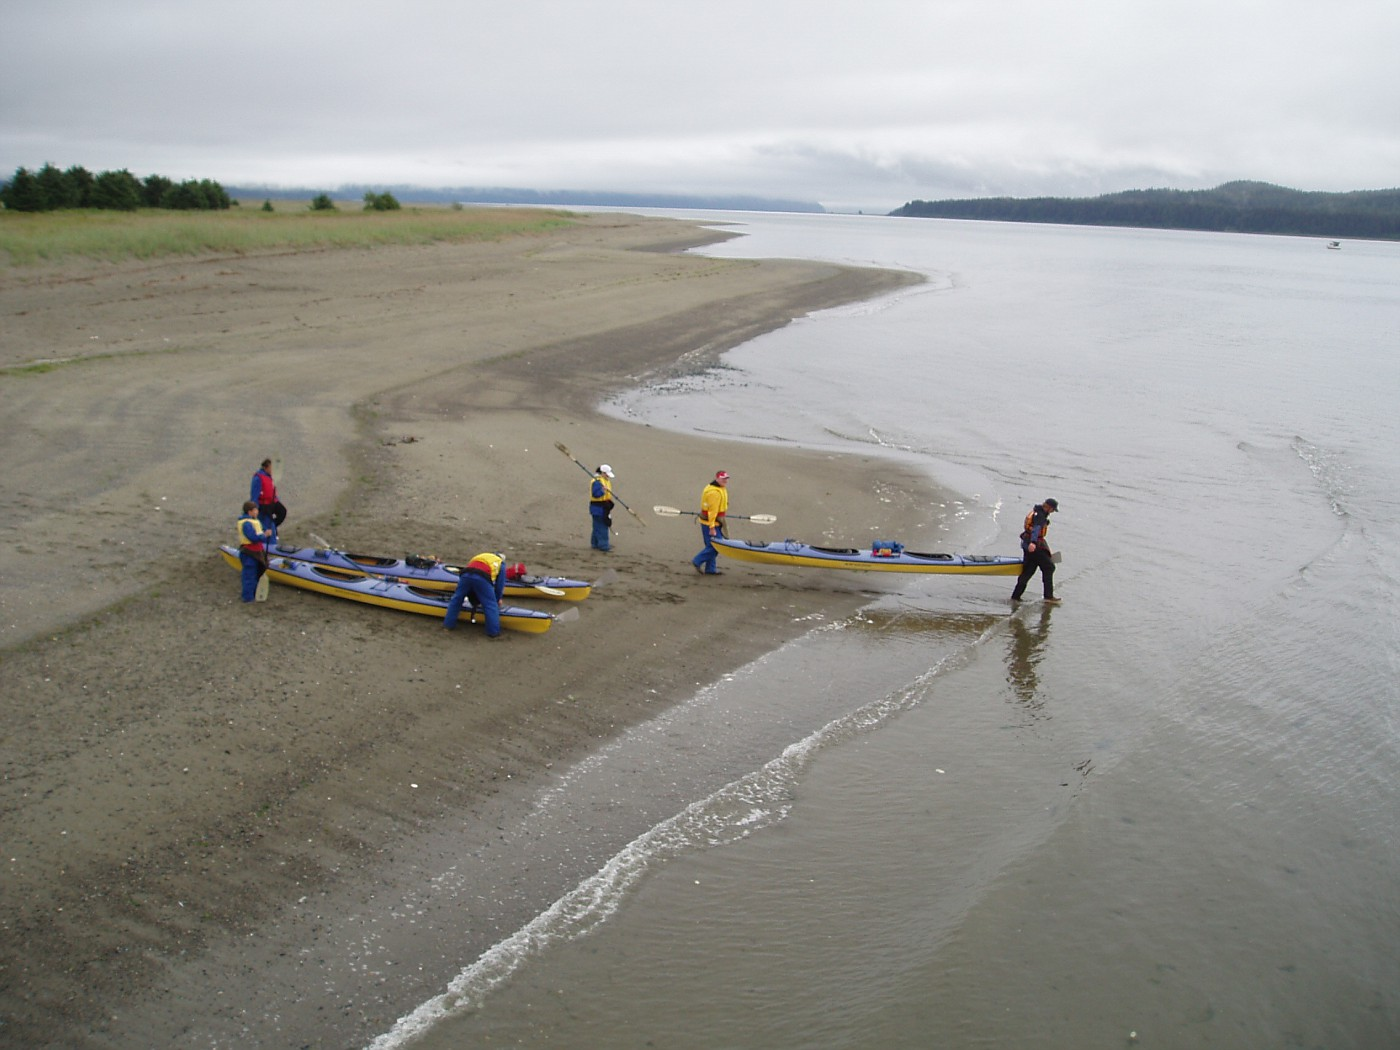 Kayakers take off from the Gustavus beachfront